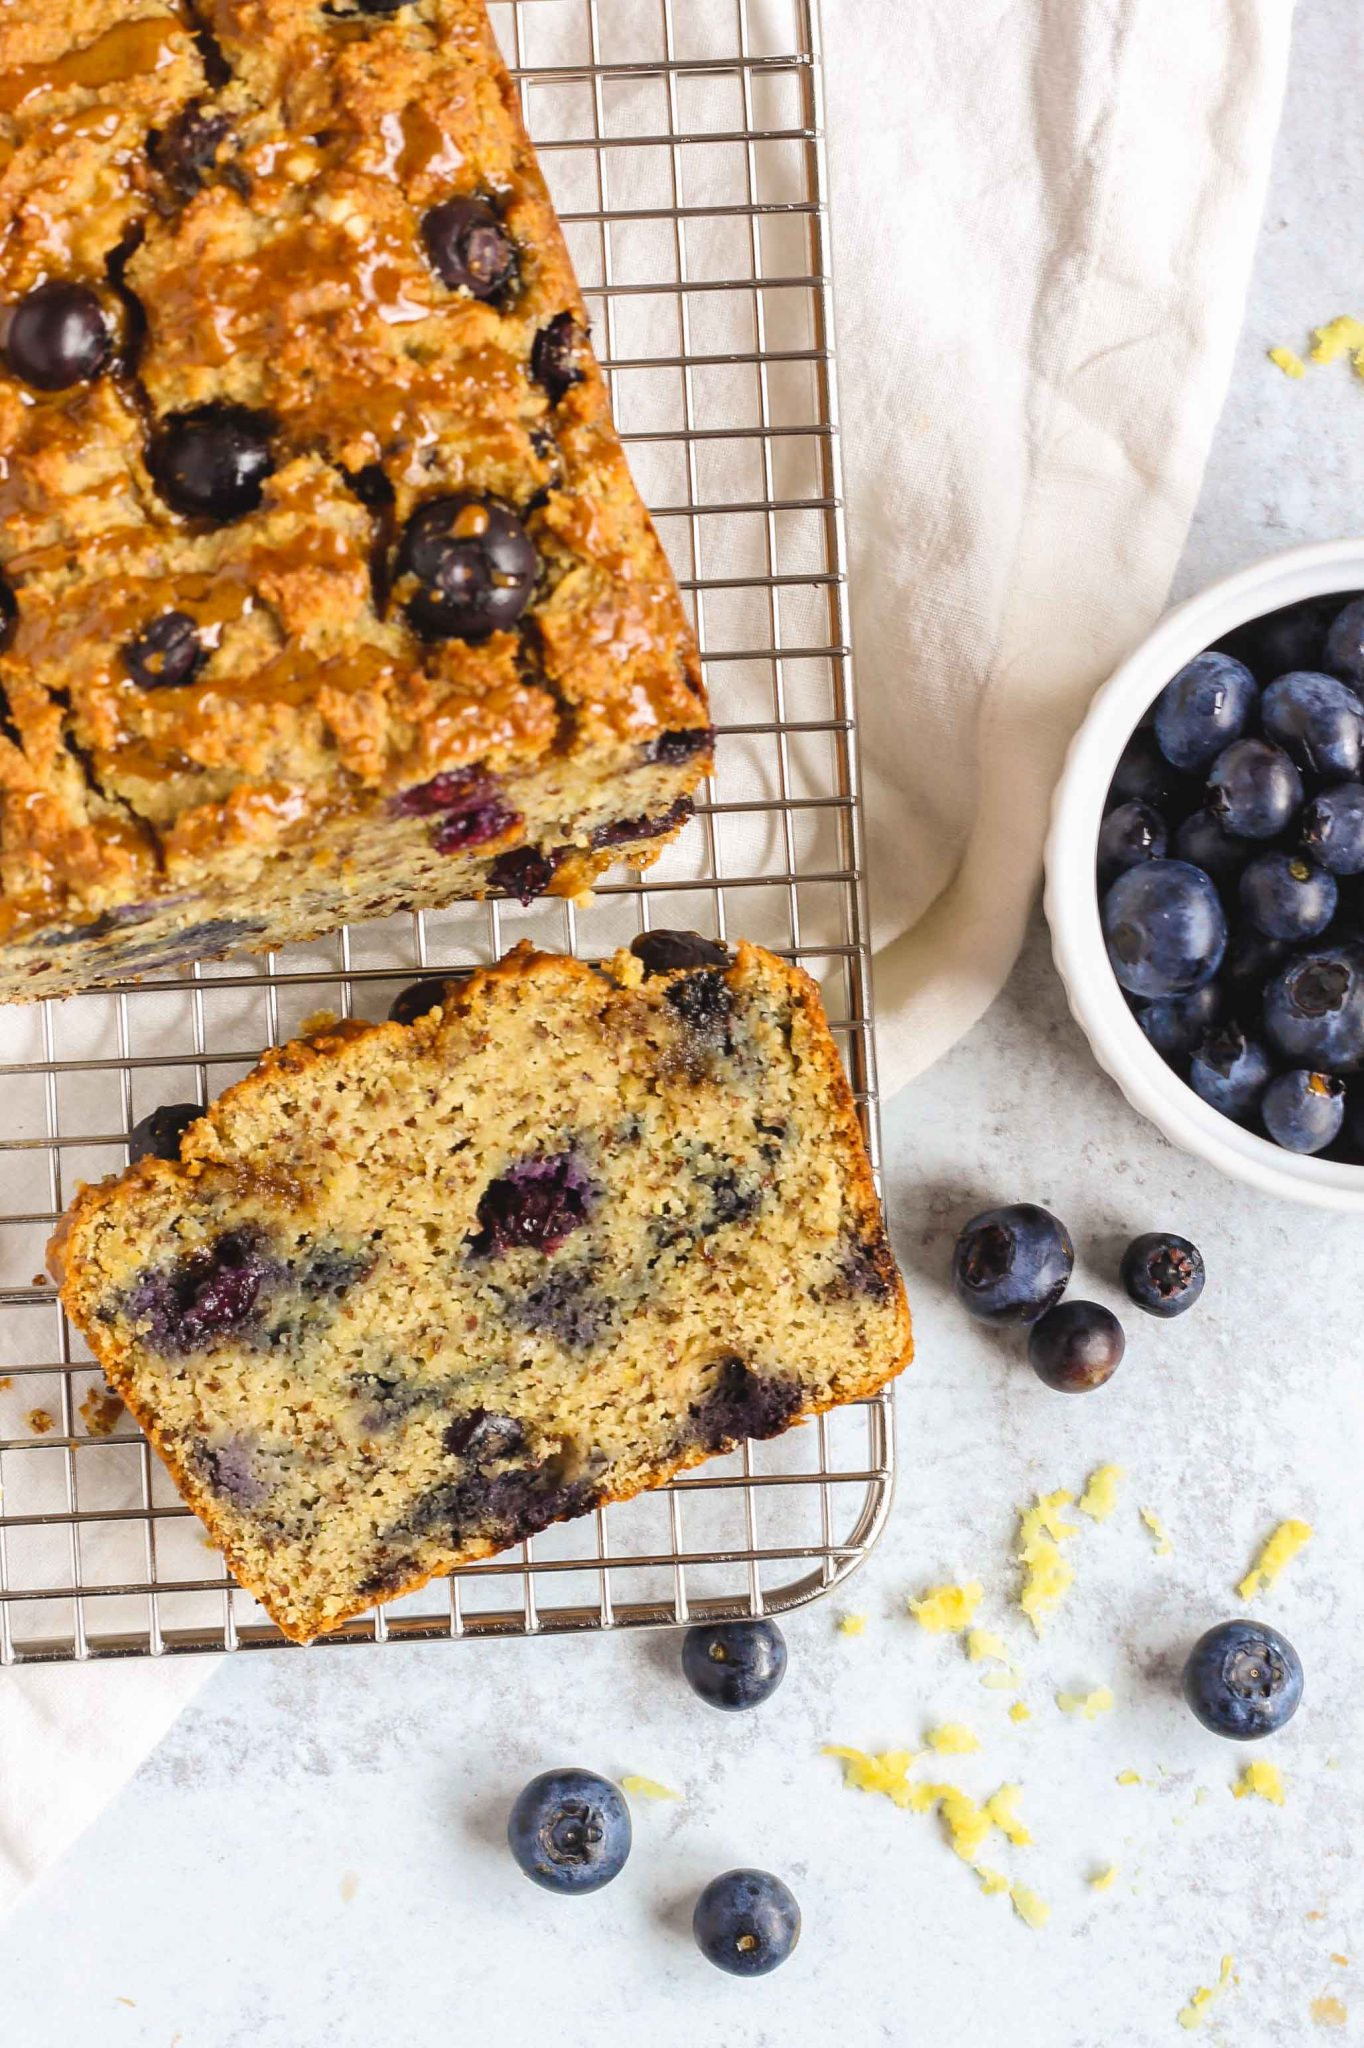 sliced lemon loaf on a wire cooling rack with blueberries sprinkled around